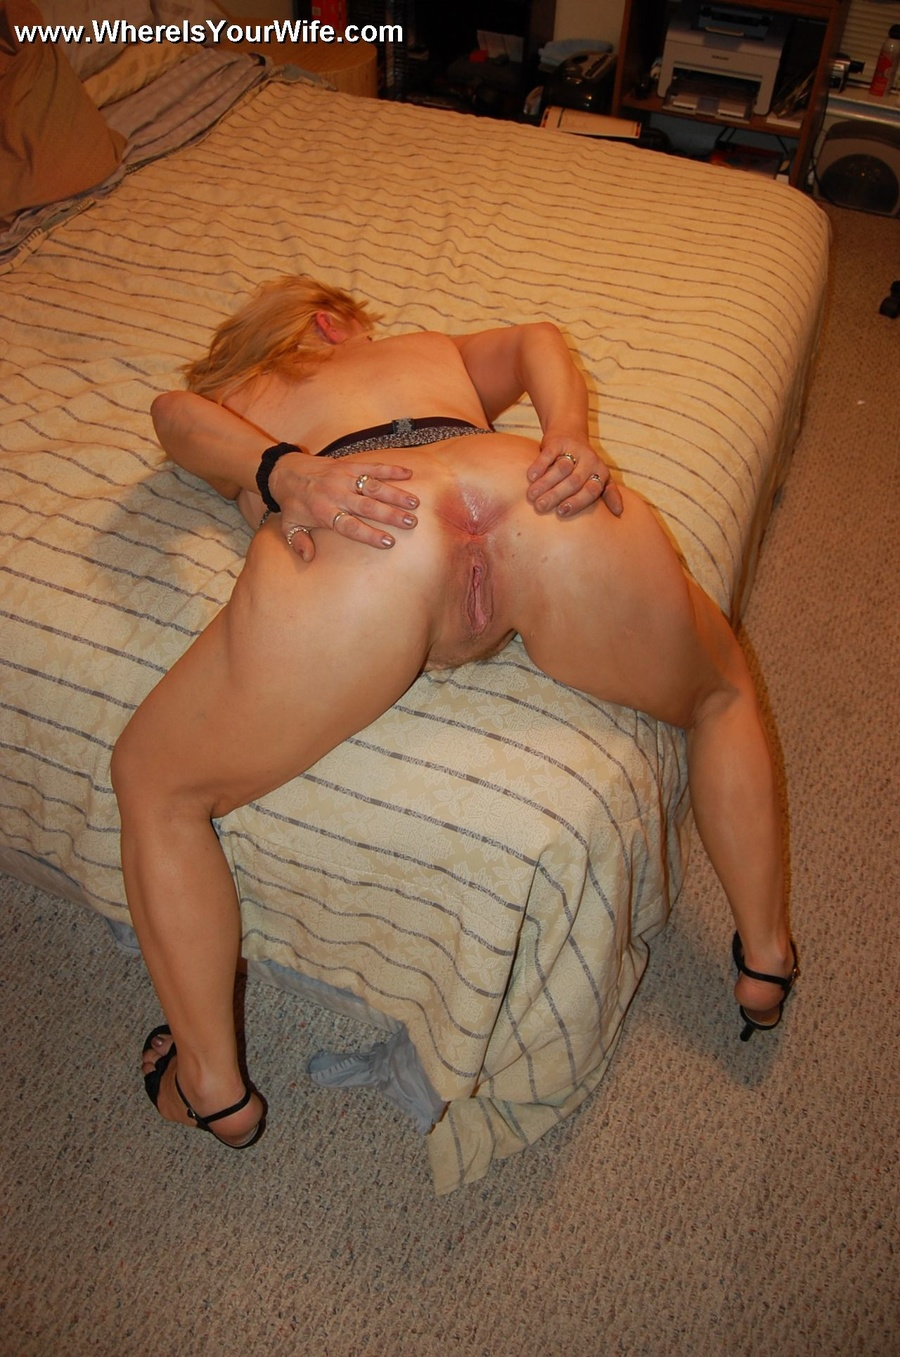 wife cheeks her Amateur spreads